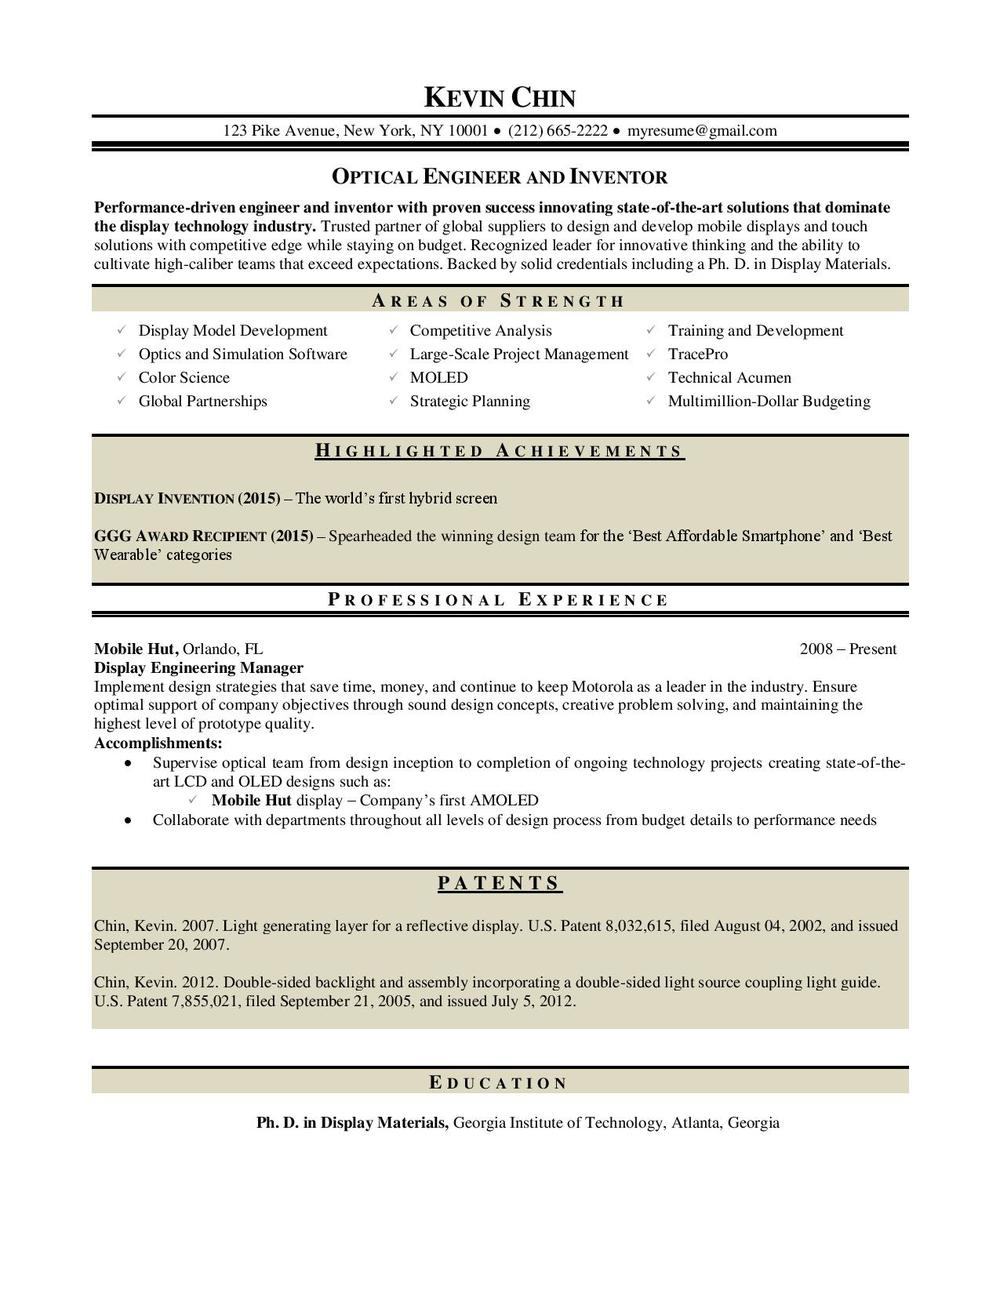 Resume writing services prices washington dc